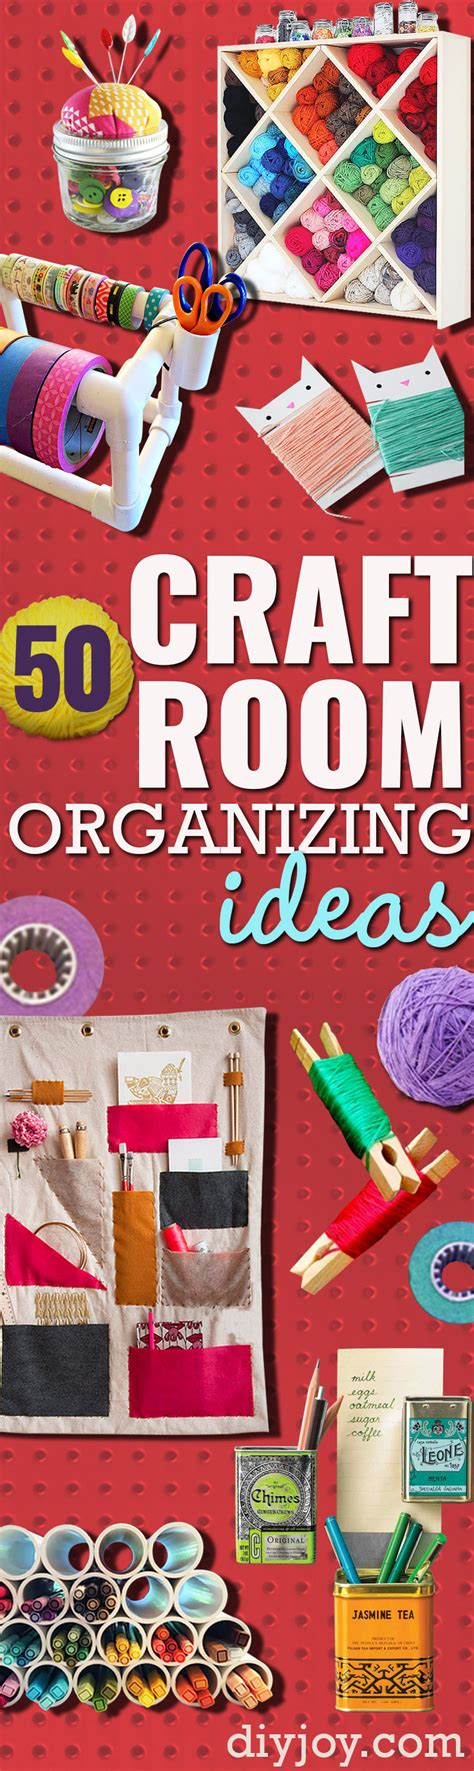 organizing yourself 1000 images about craft room ideas on diy and crafts craft rooms and sewing rooms